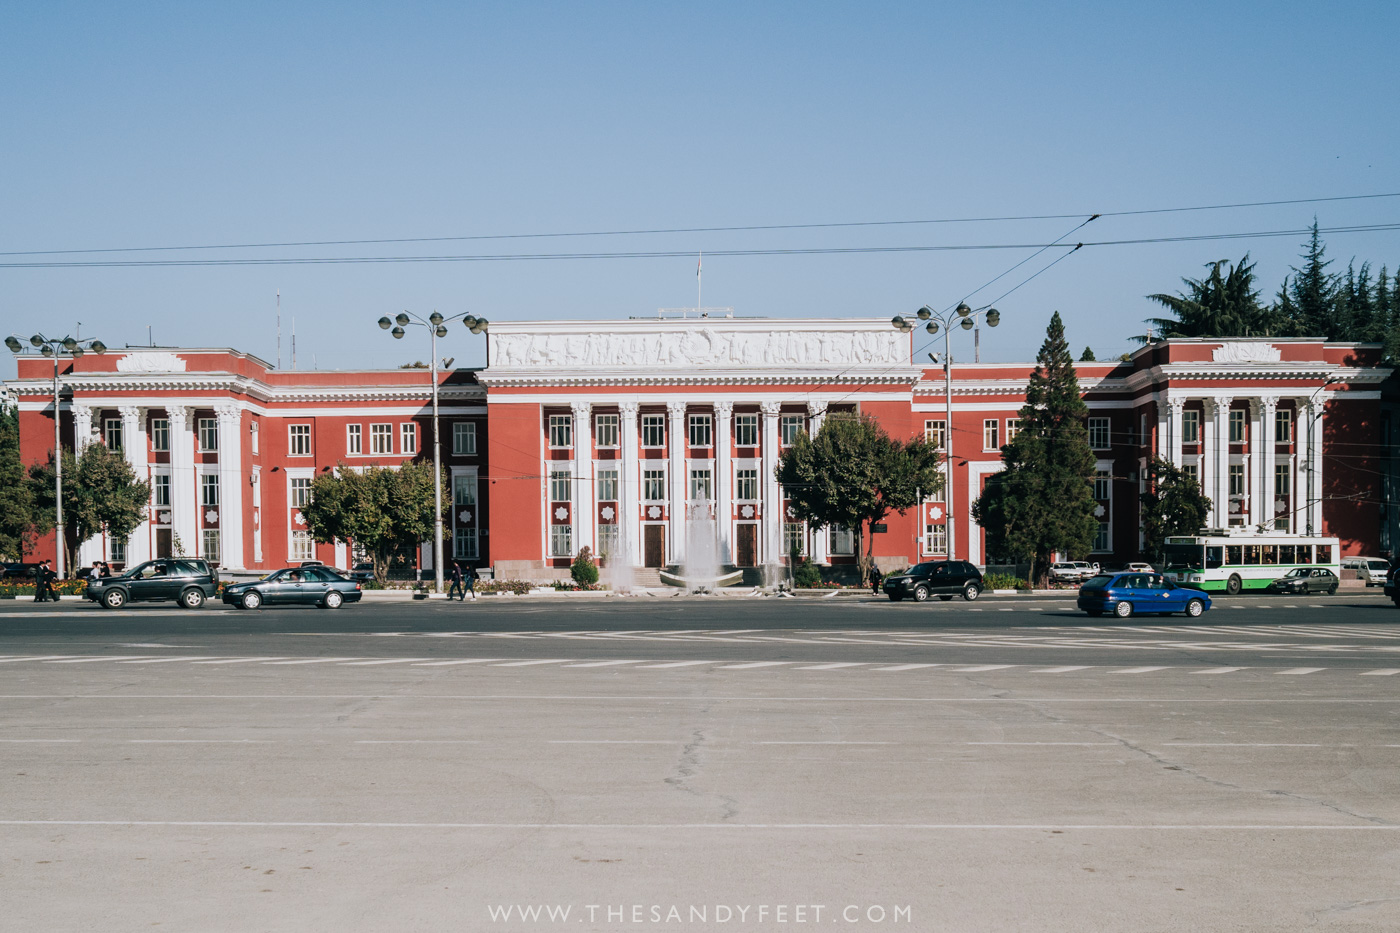 The Best Things To Do In Dushanbe | How To Spend 24 Hours In Dushanbe, Tajikistan's Chaotic Capital